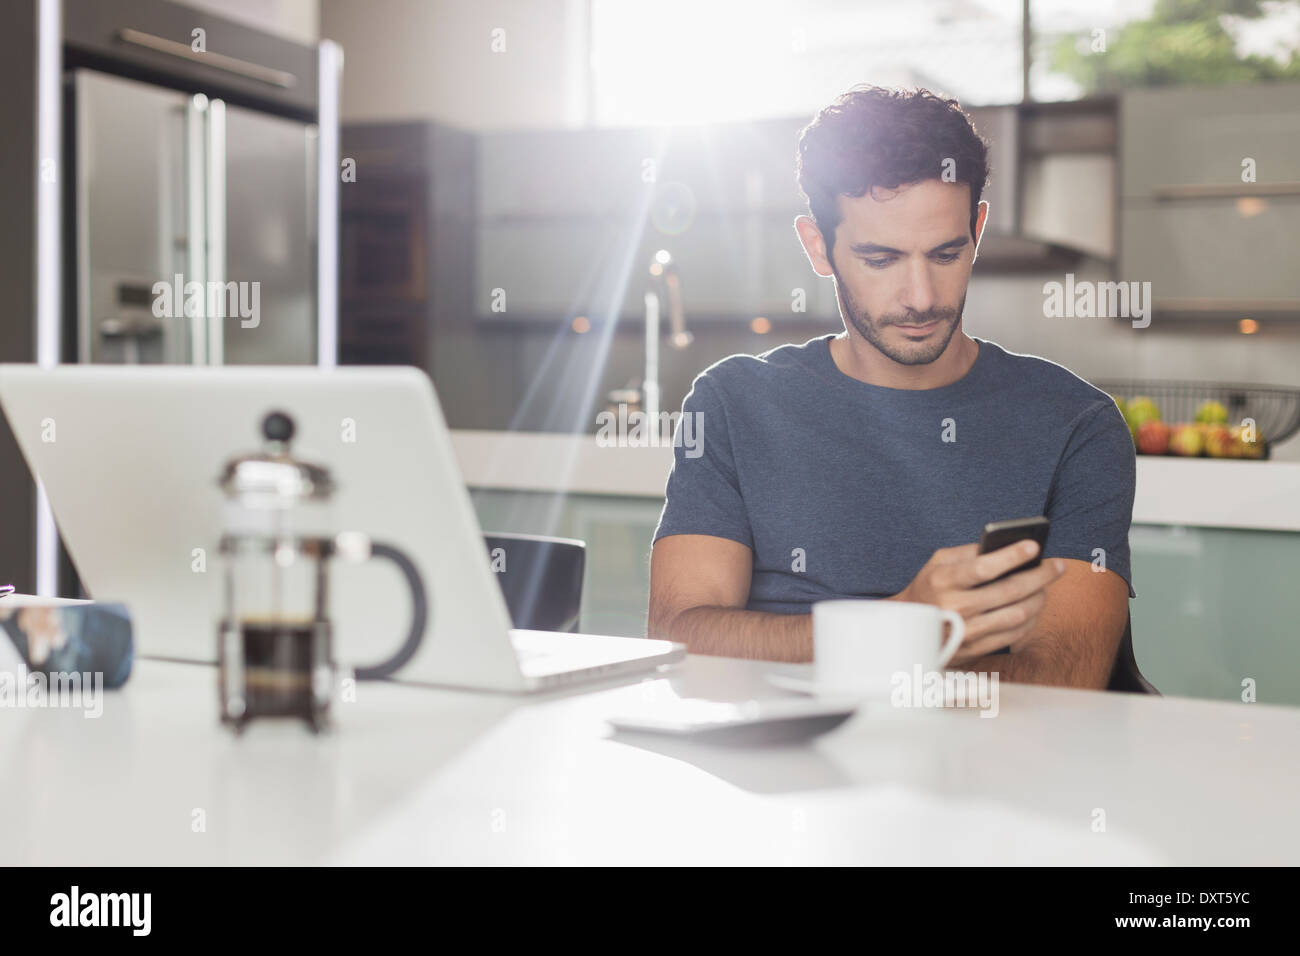 Man texting with cell phone at kitchen table - Stock Image